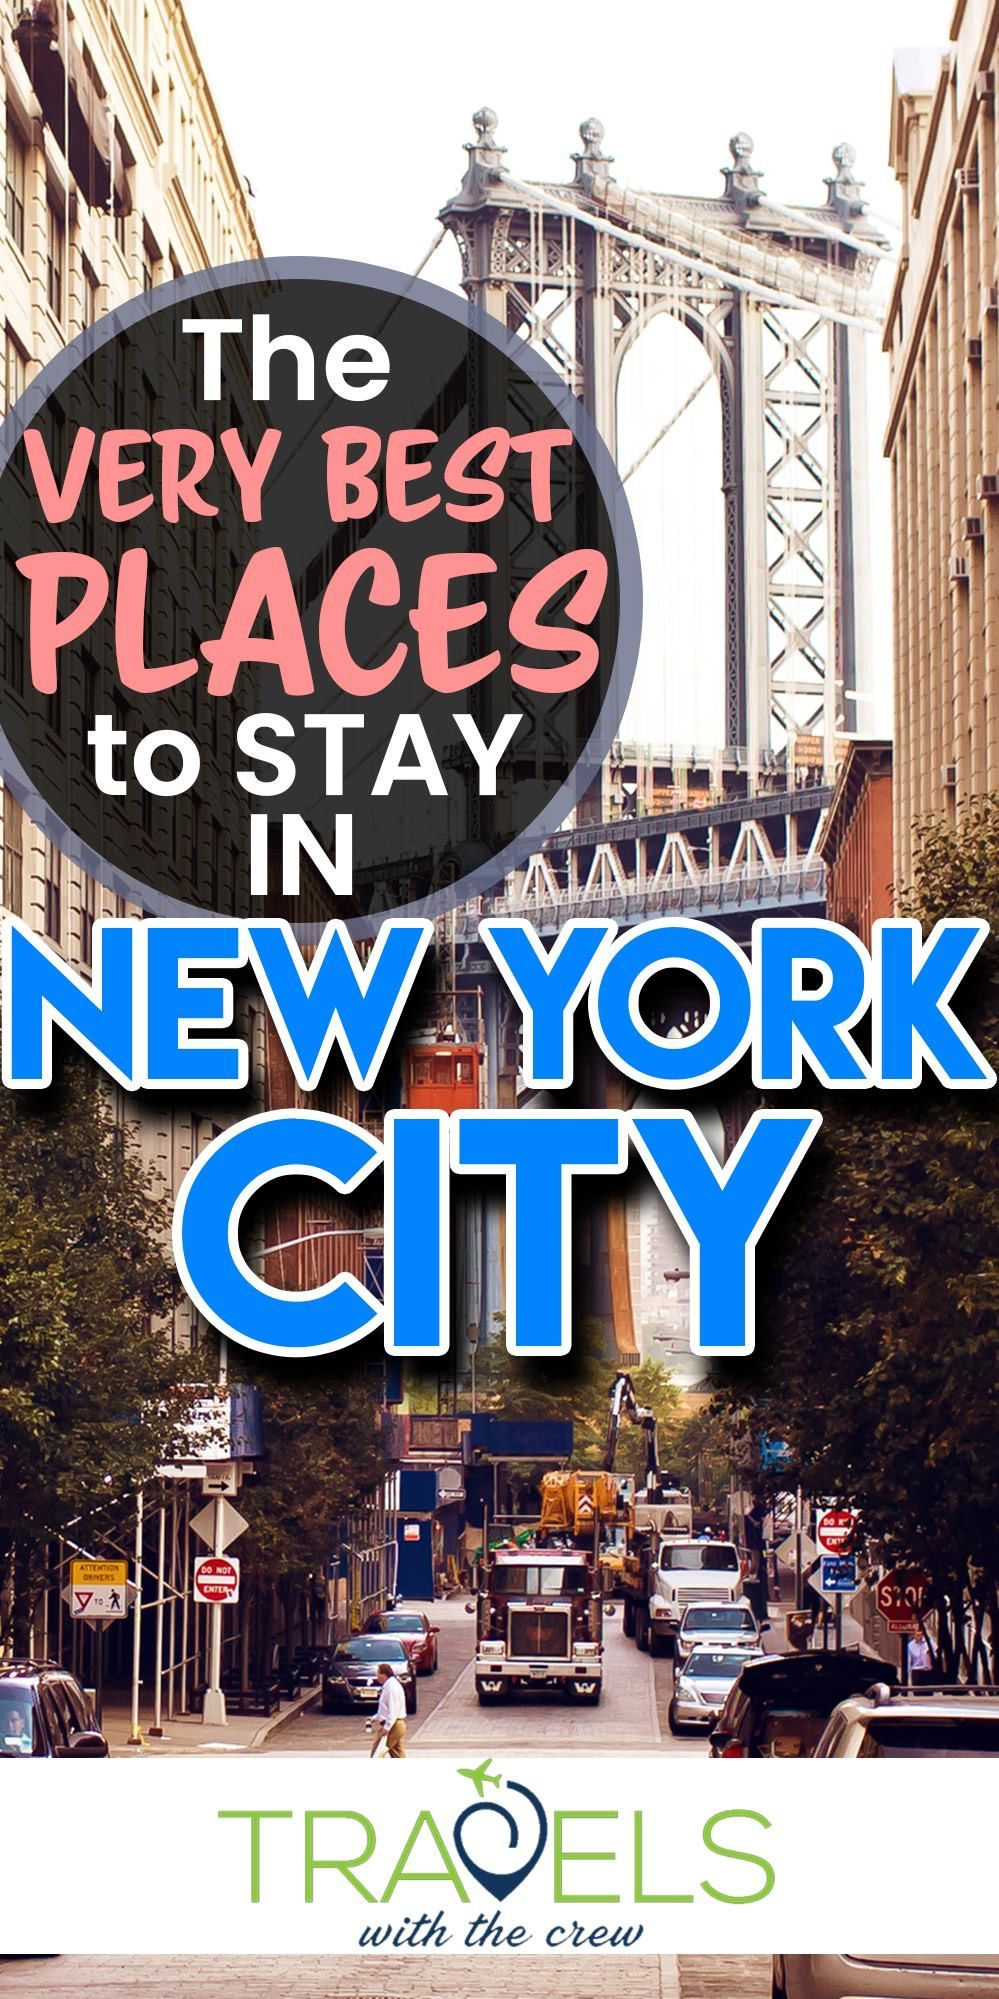 The very best places to stay in New York City #travelnorthamerica